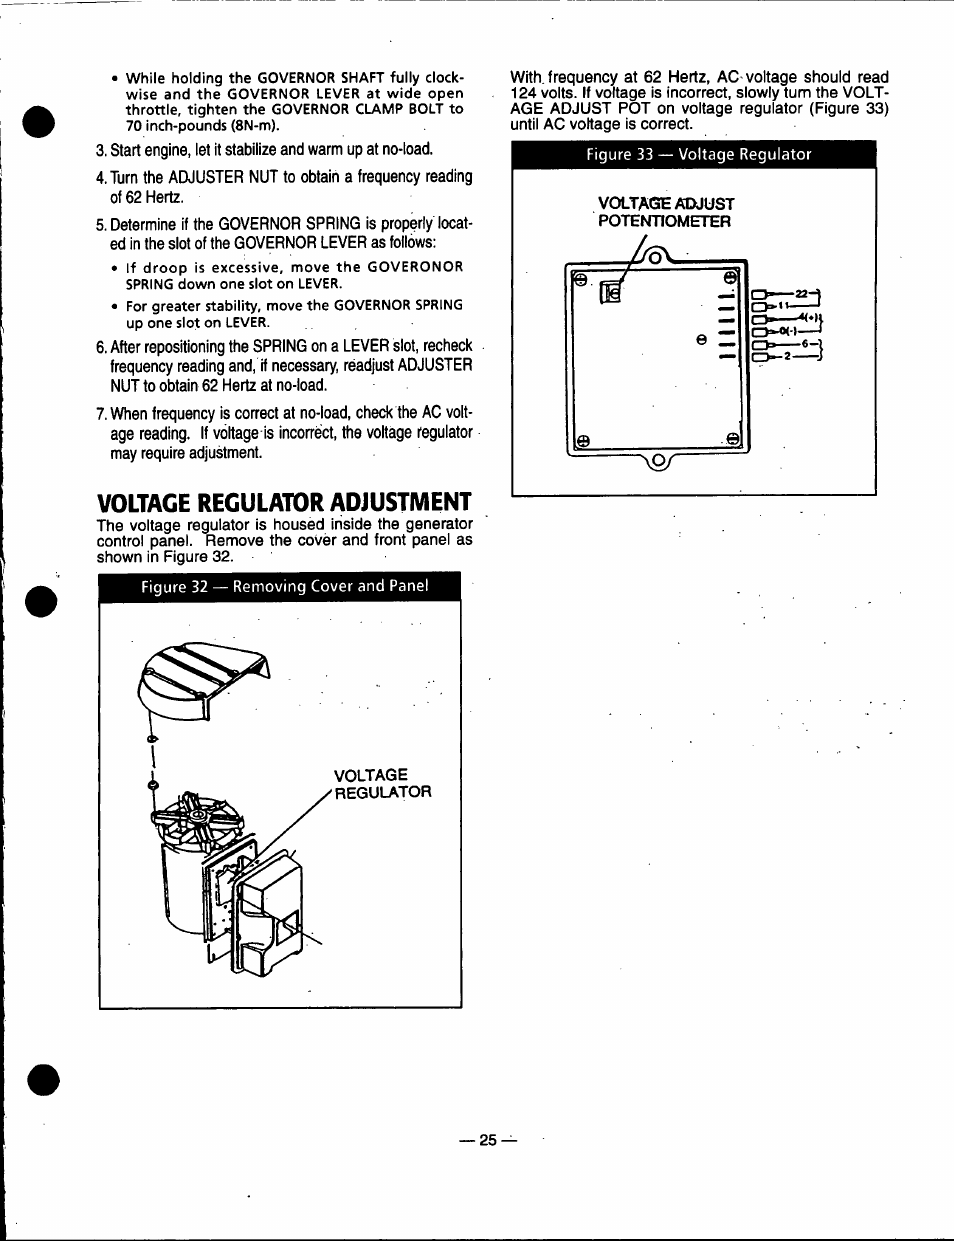 hight resolution of voltage regulator adjustment generac power systems 91355 user ford tractor wiring diagram generac regulator diagram